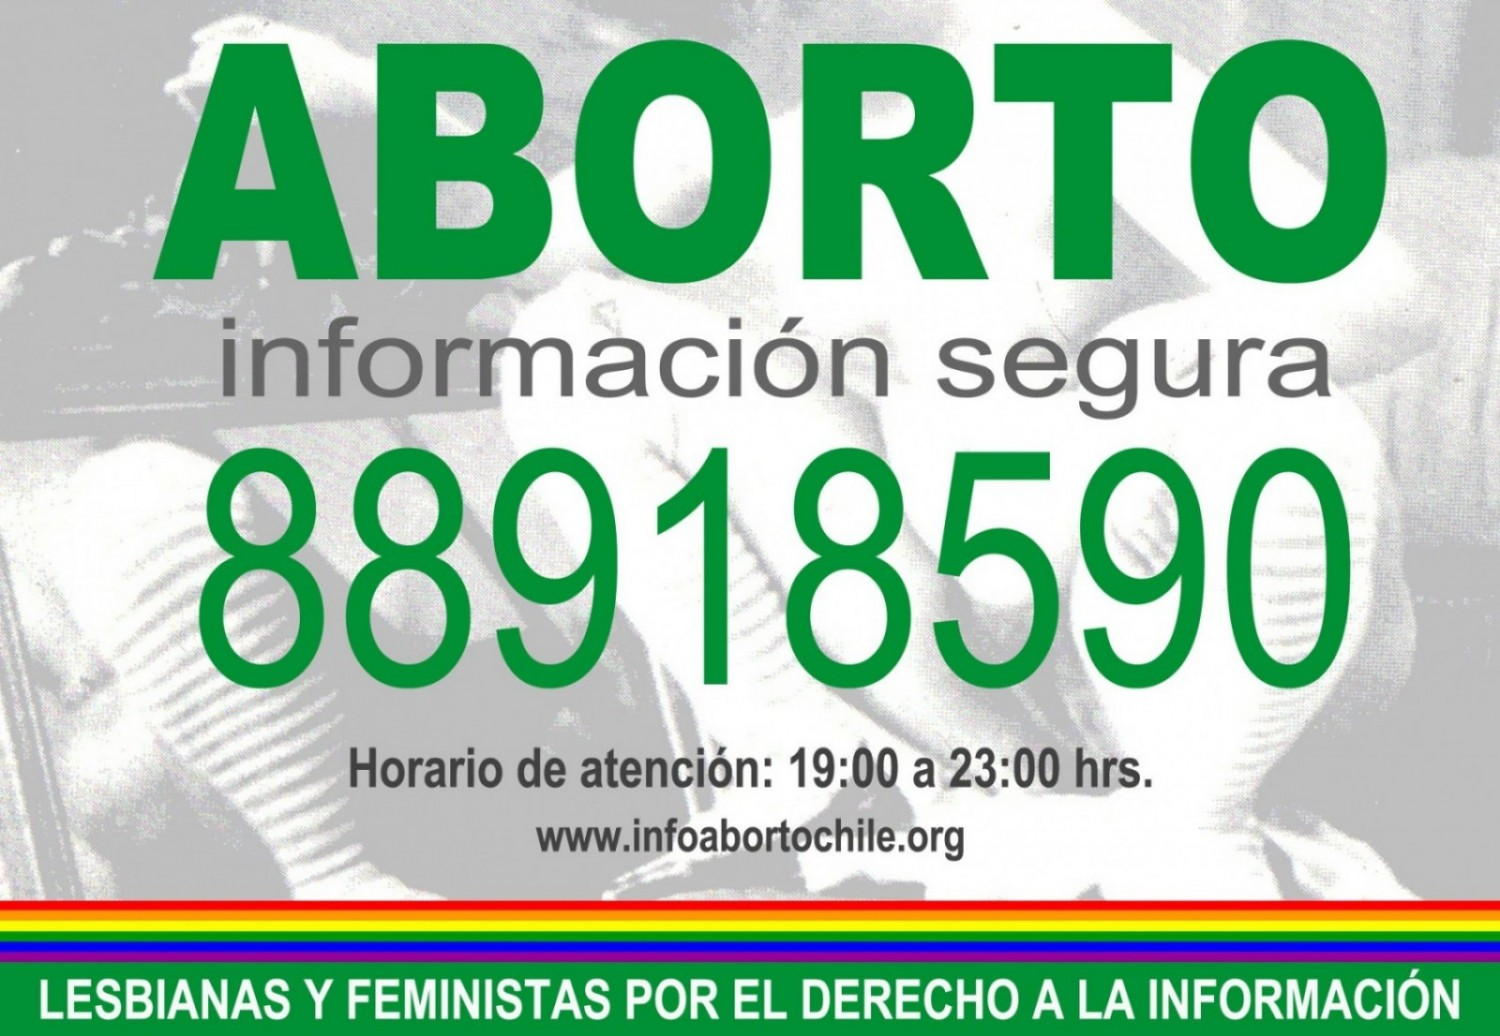 Opinion personal sobre el aborto yahoo dating